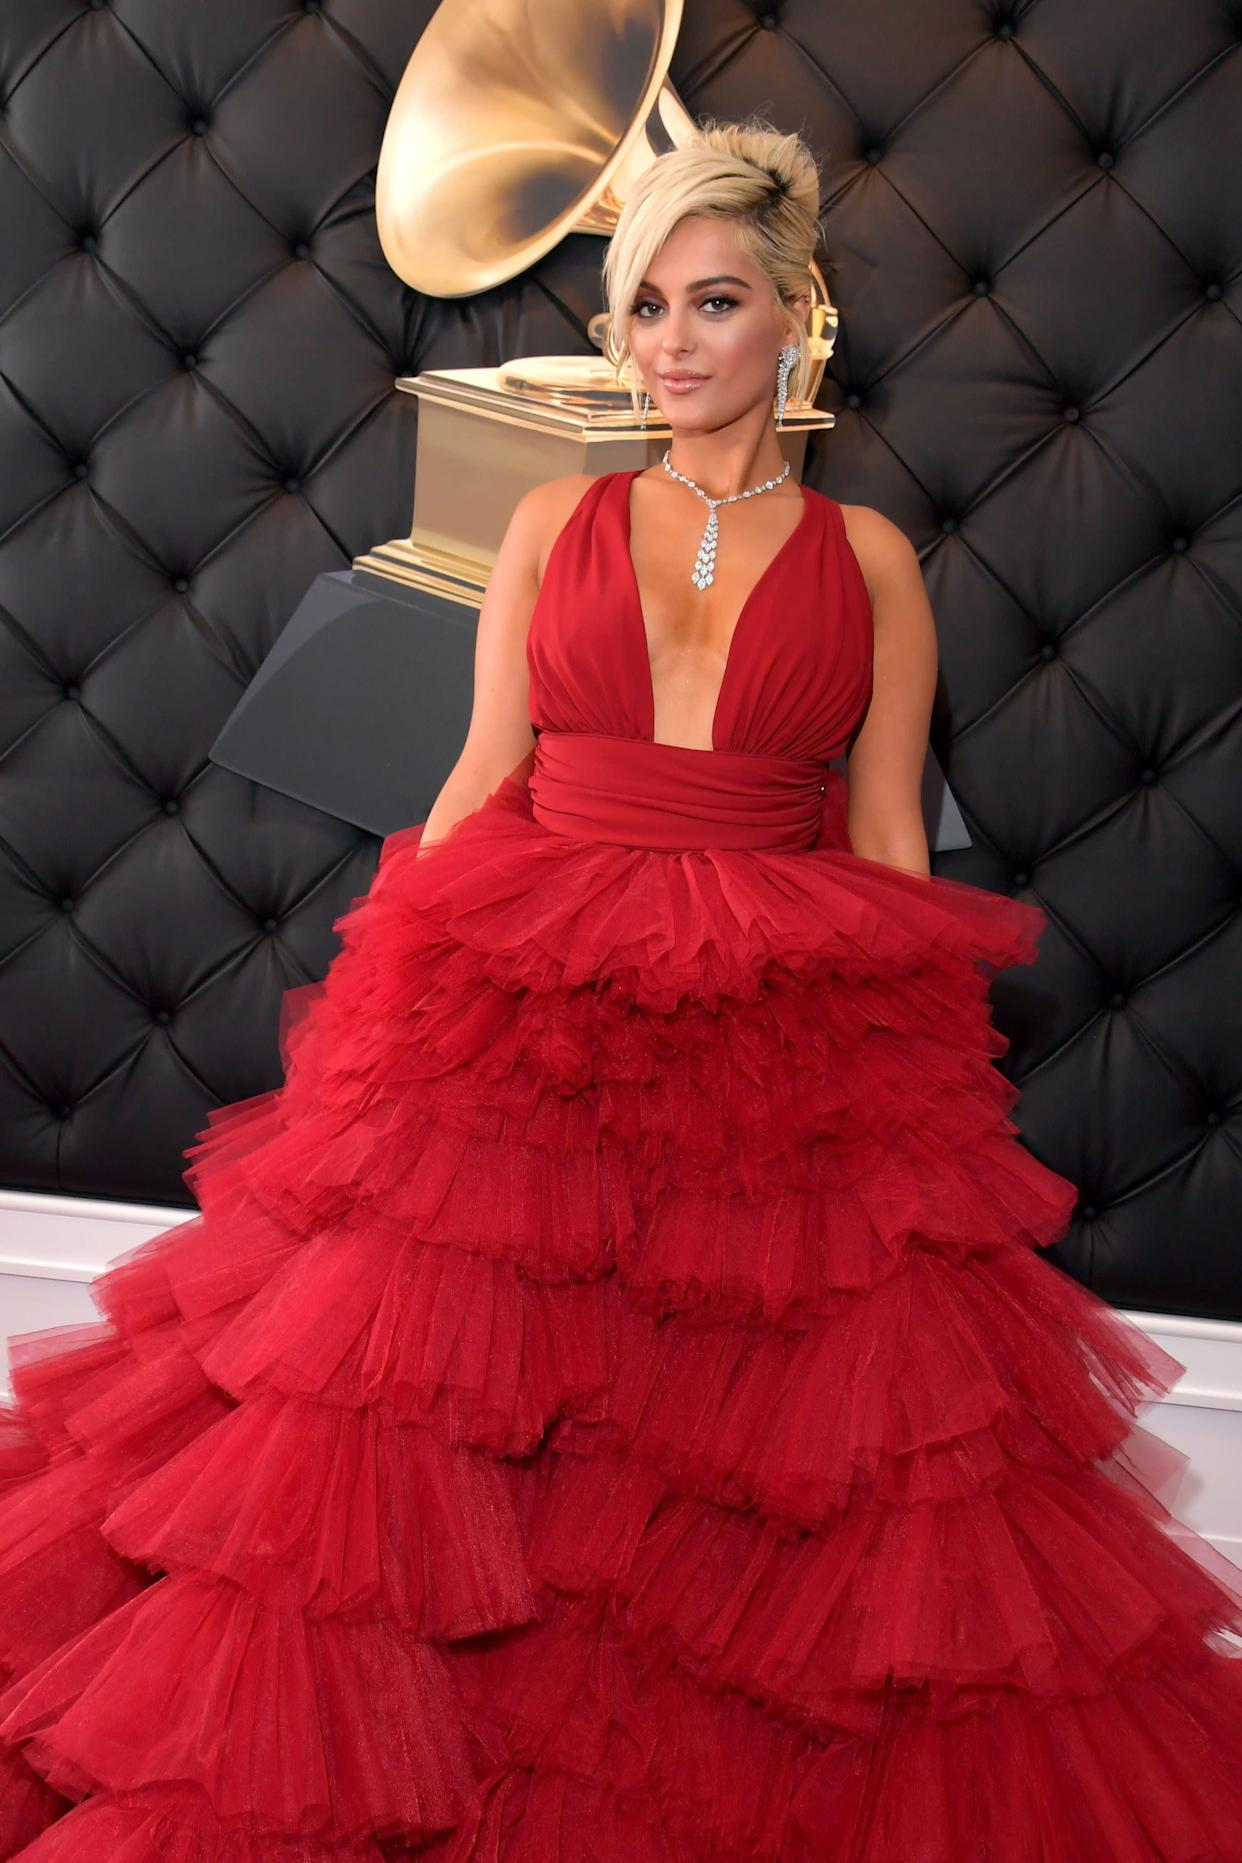 """""""I feel like a princess,"""" BebeRexha said.""""I wanted to go for that vibe."""" (Photo: Lester Cohen via Getty Images)"""